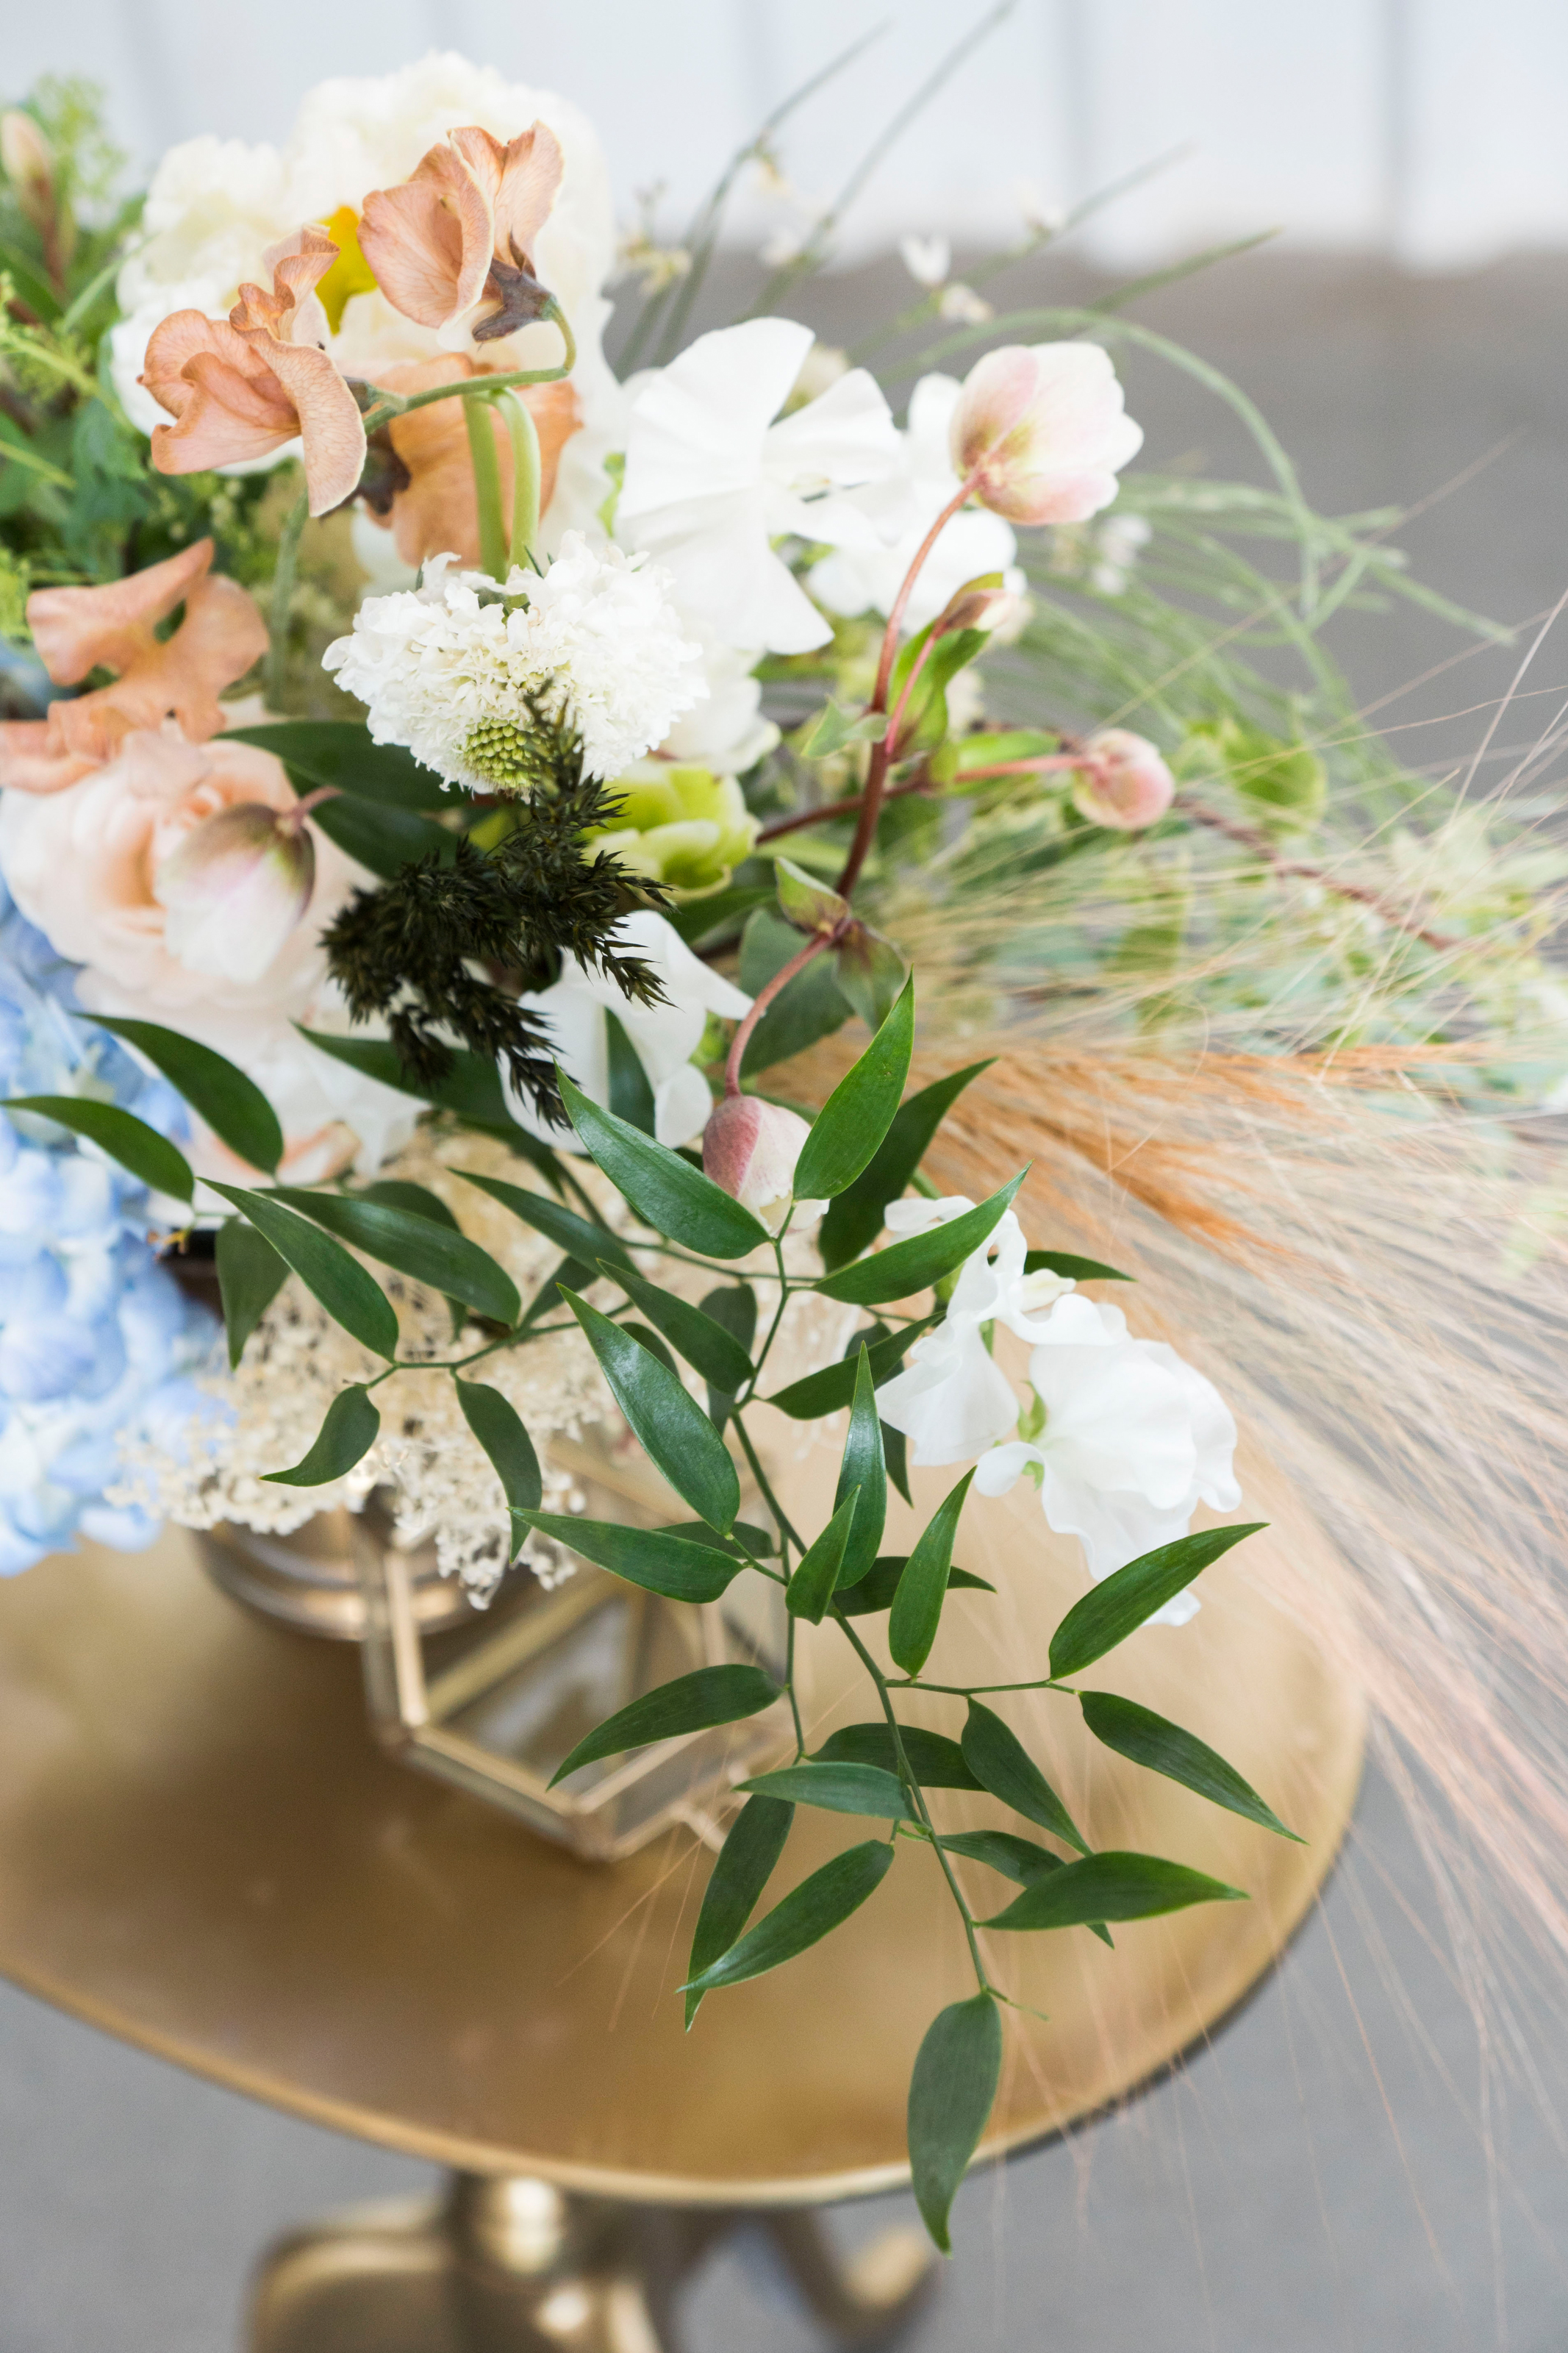 wheat floral arrangement.jpg